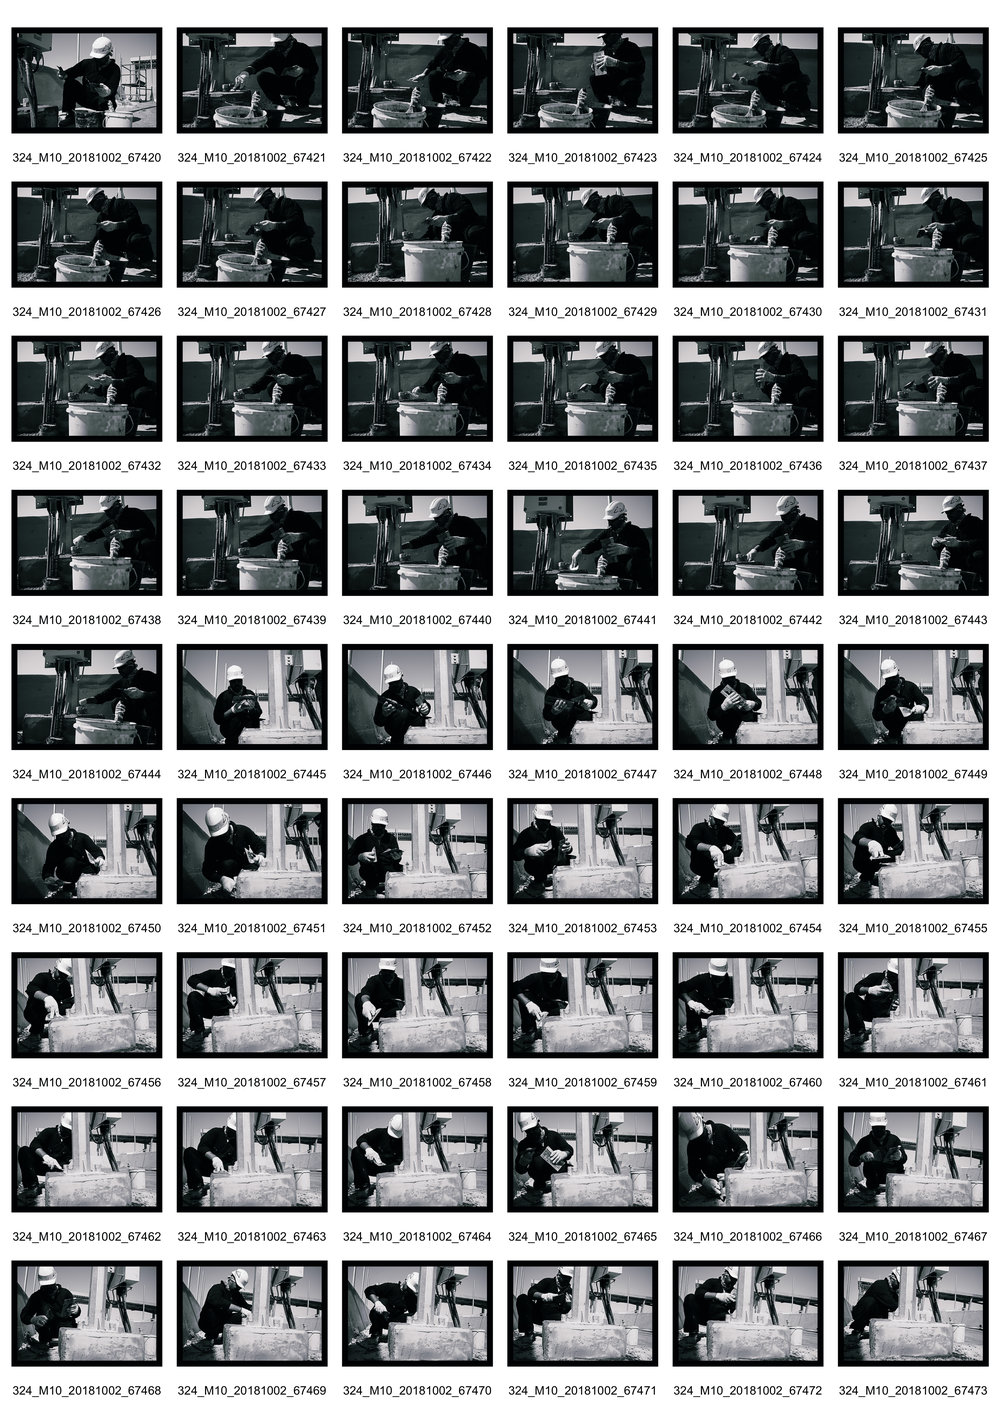 Person at Work I - Contact Sheet 2 of 2